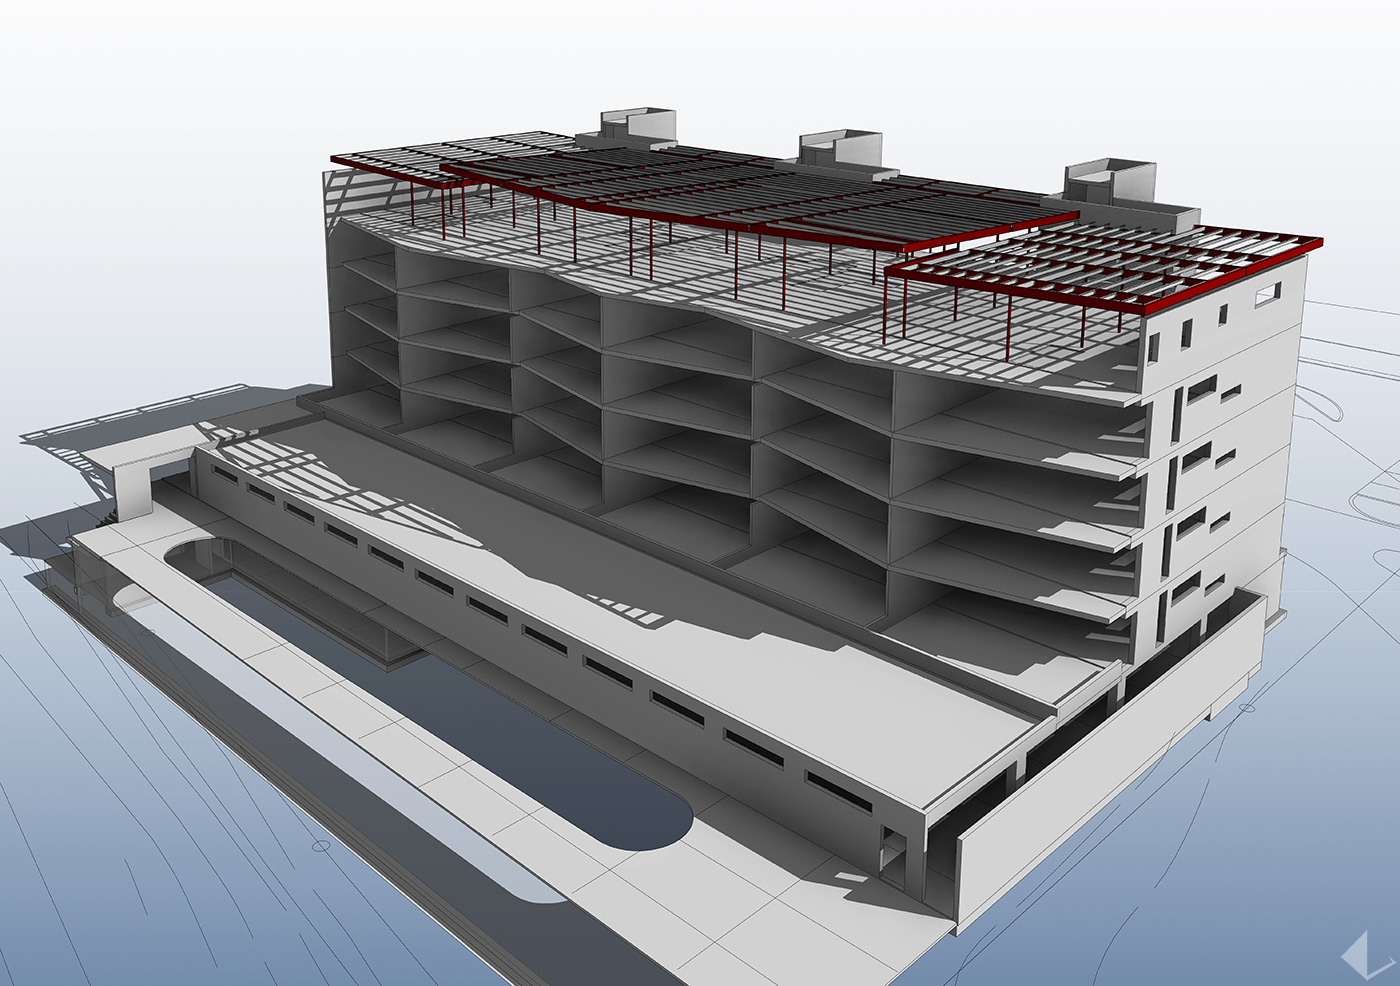 Balneum Apartments - Stage 2 & 3 : Image 5